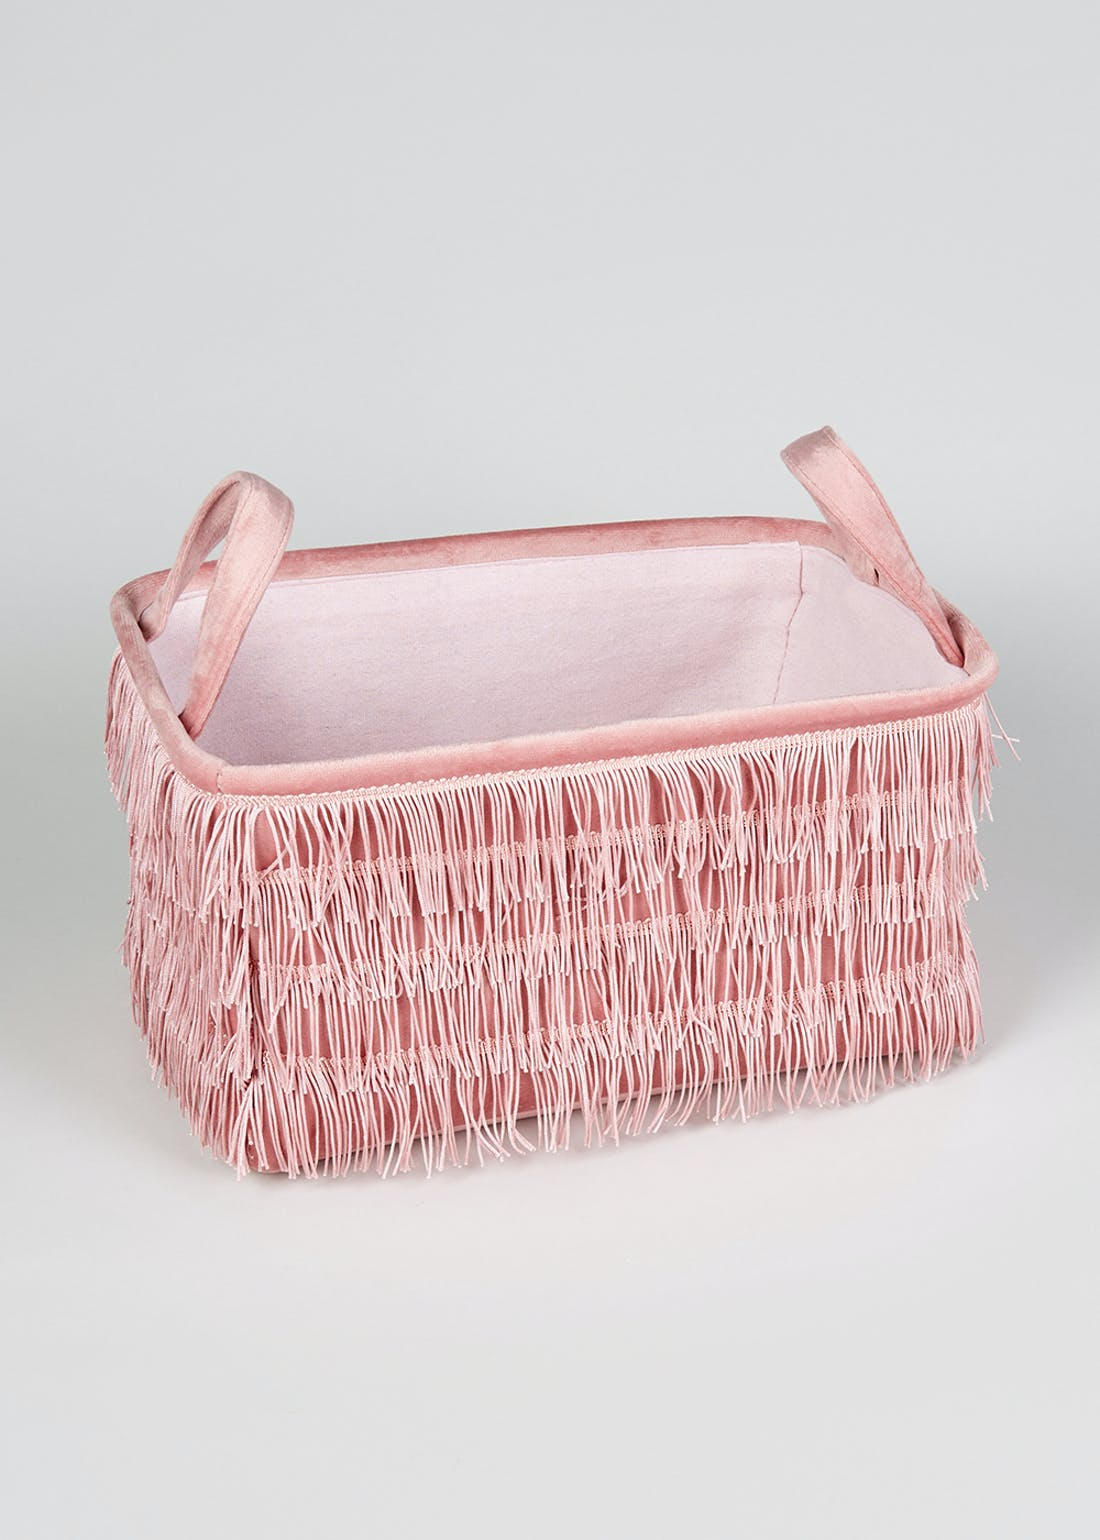 Fringed Storage Basket